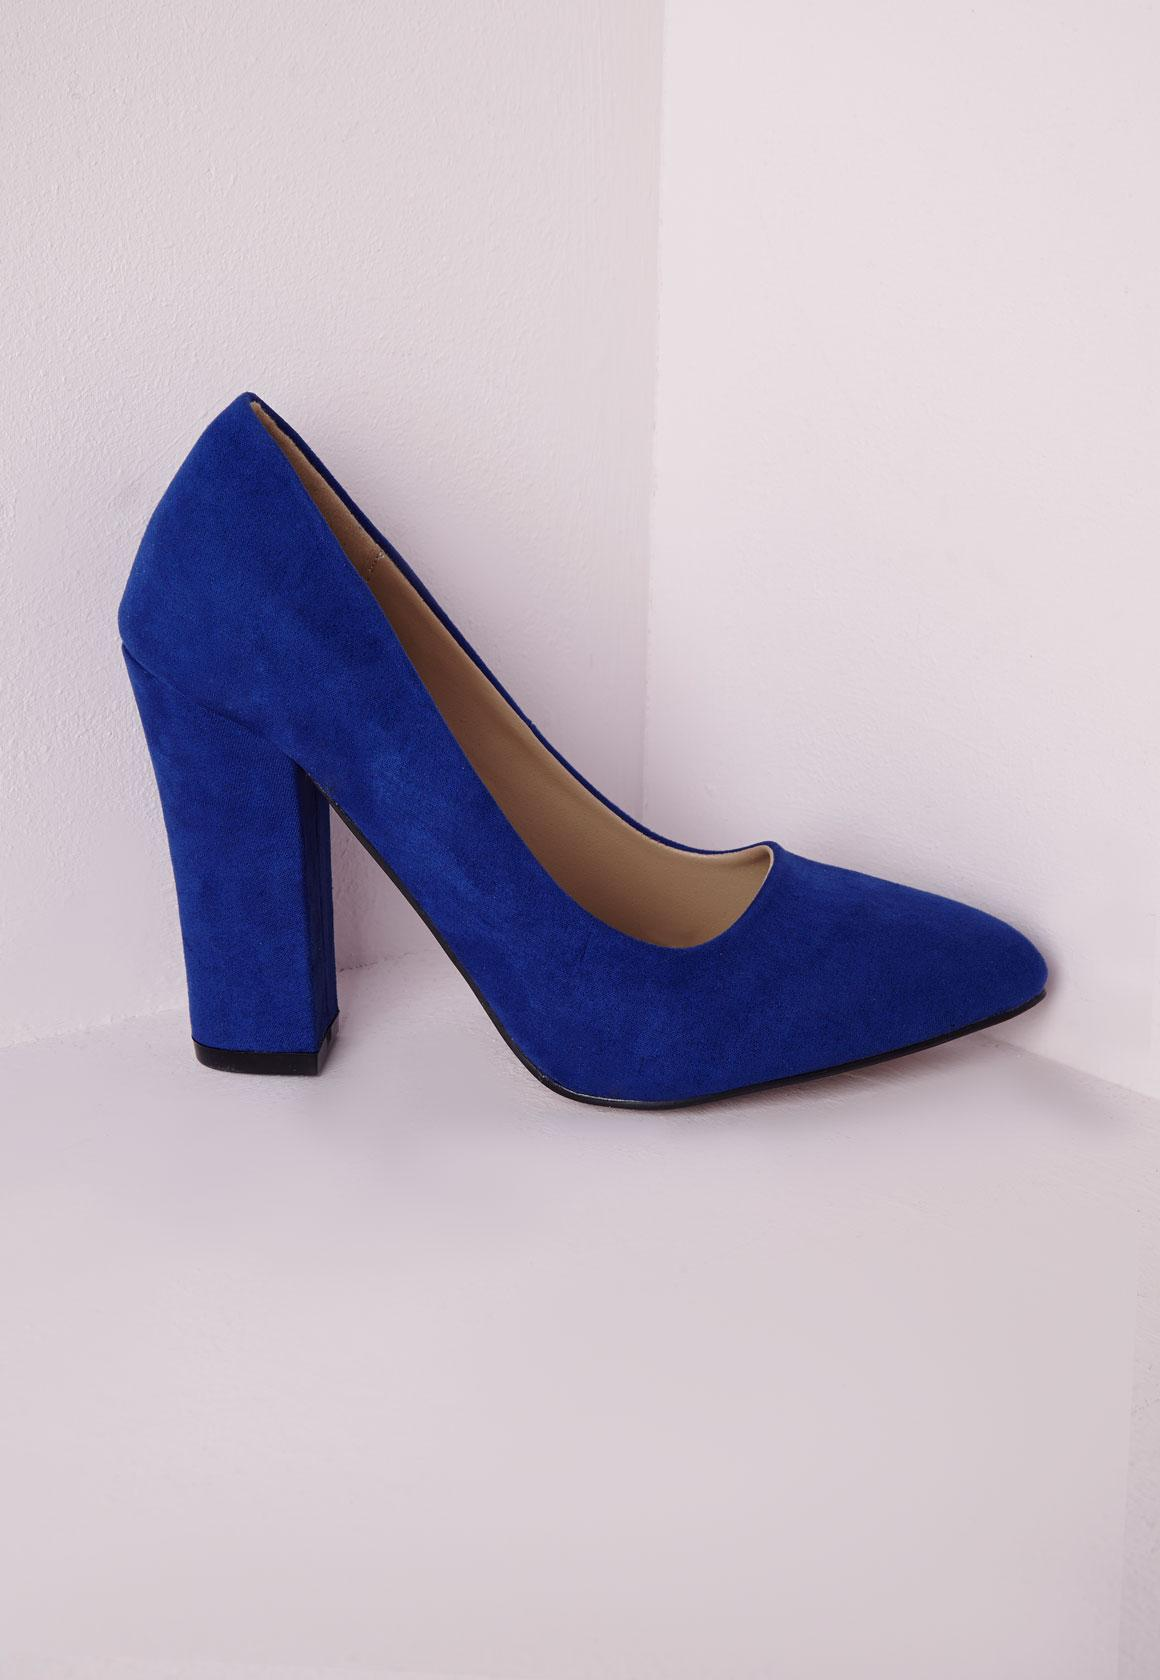 Block Heel Pumps Cobalt Blue - Shoes - High Heels - Missguided